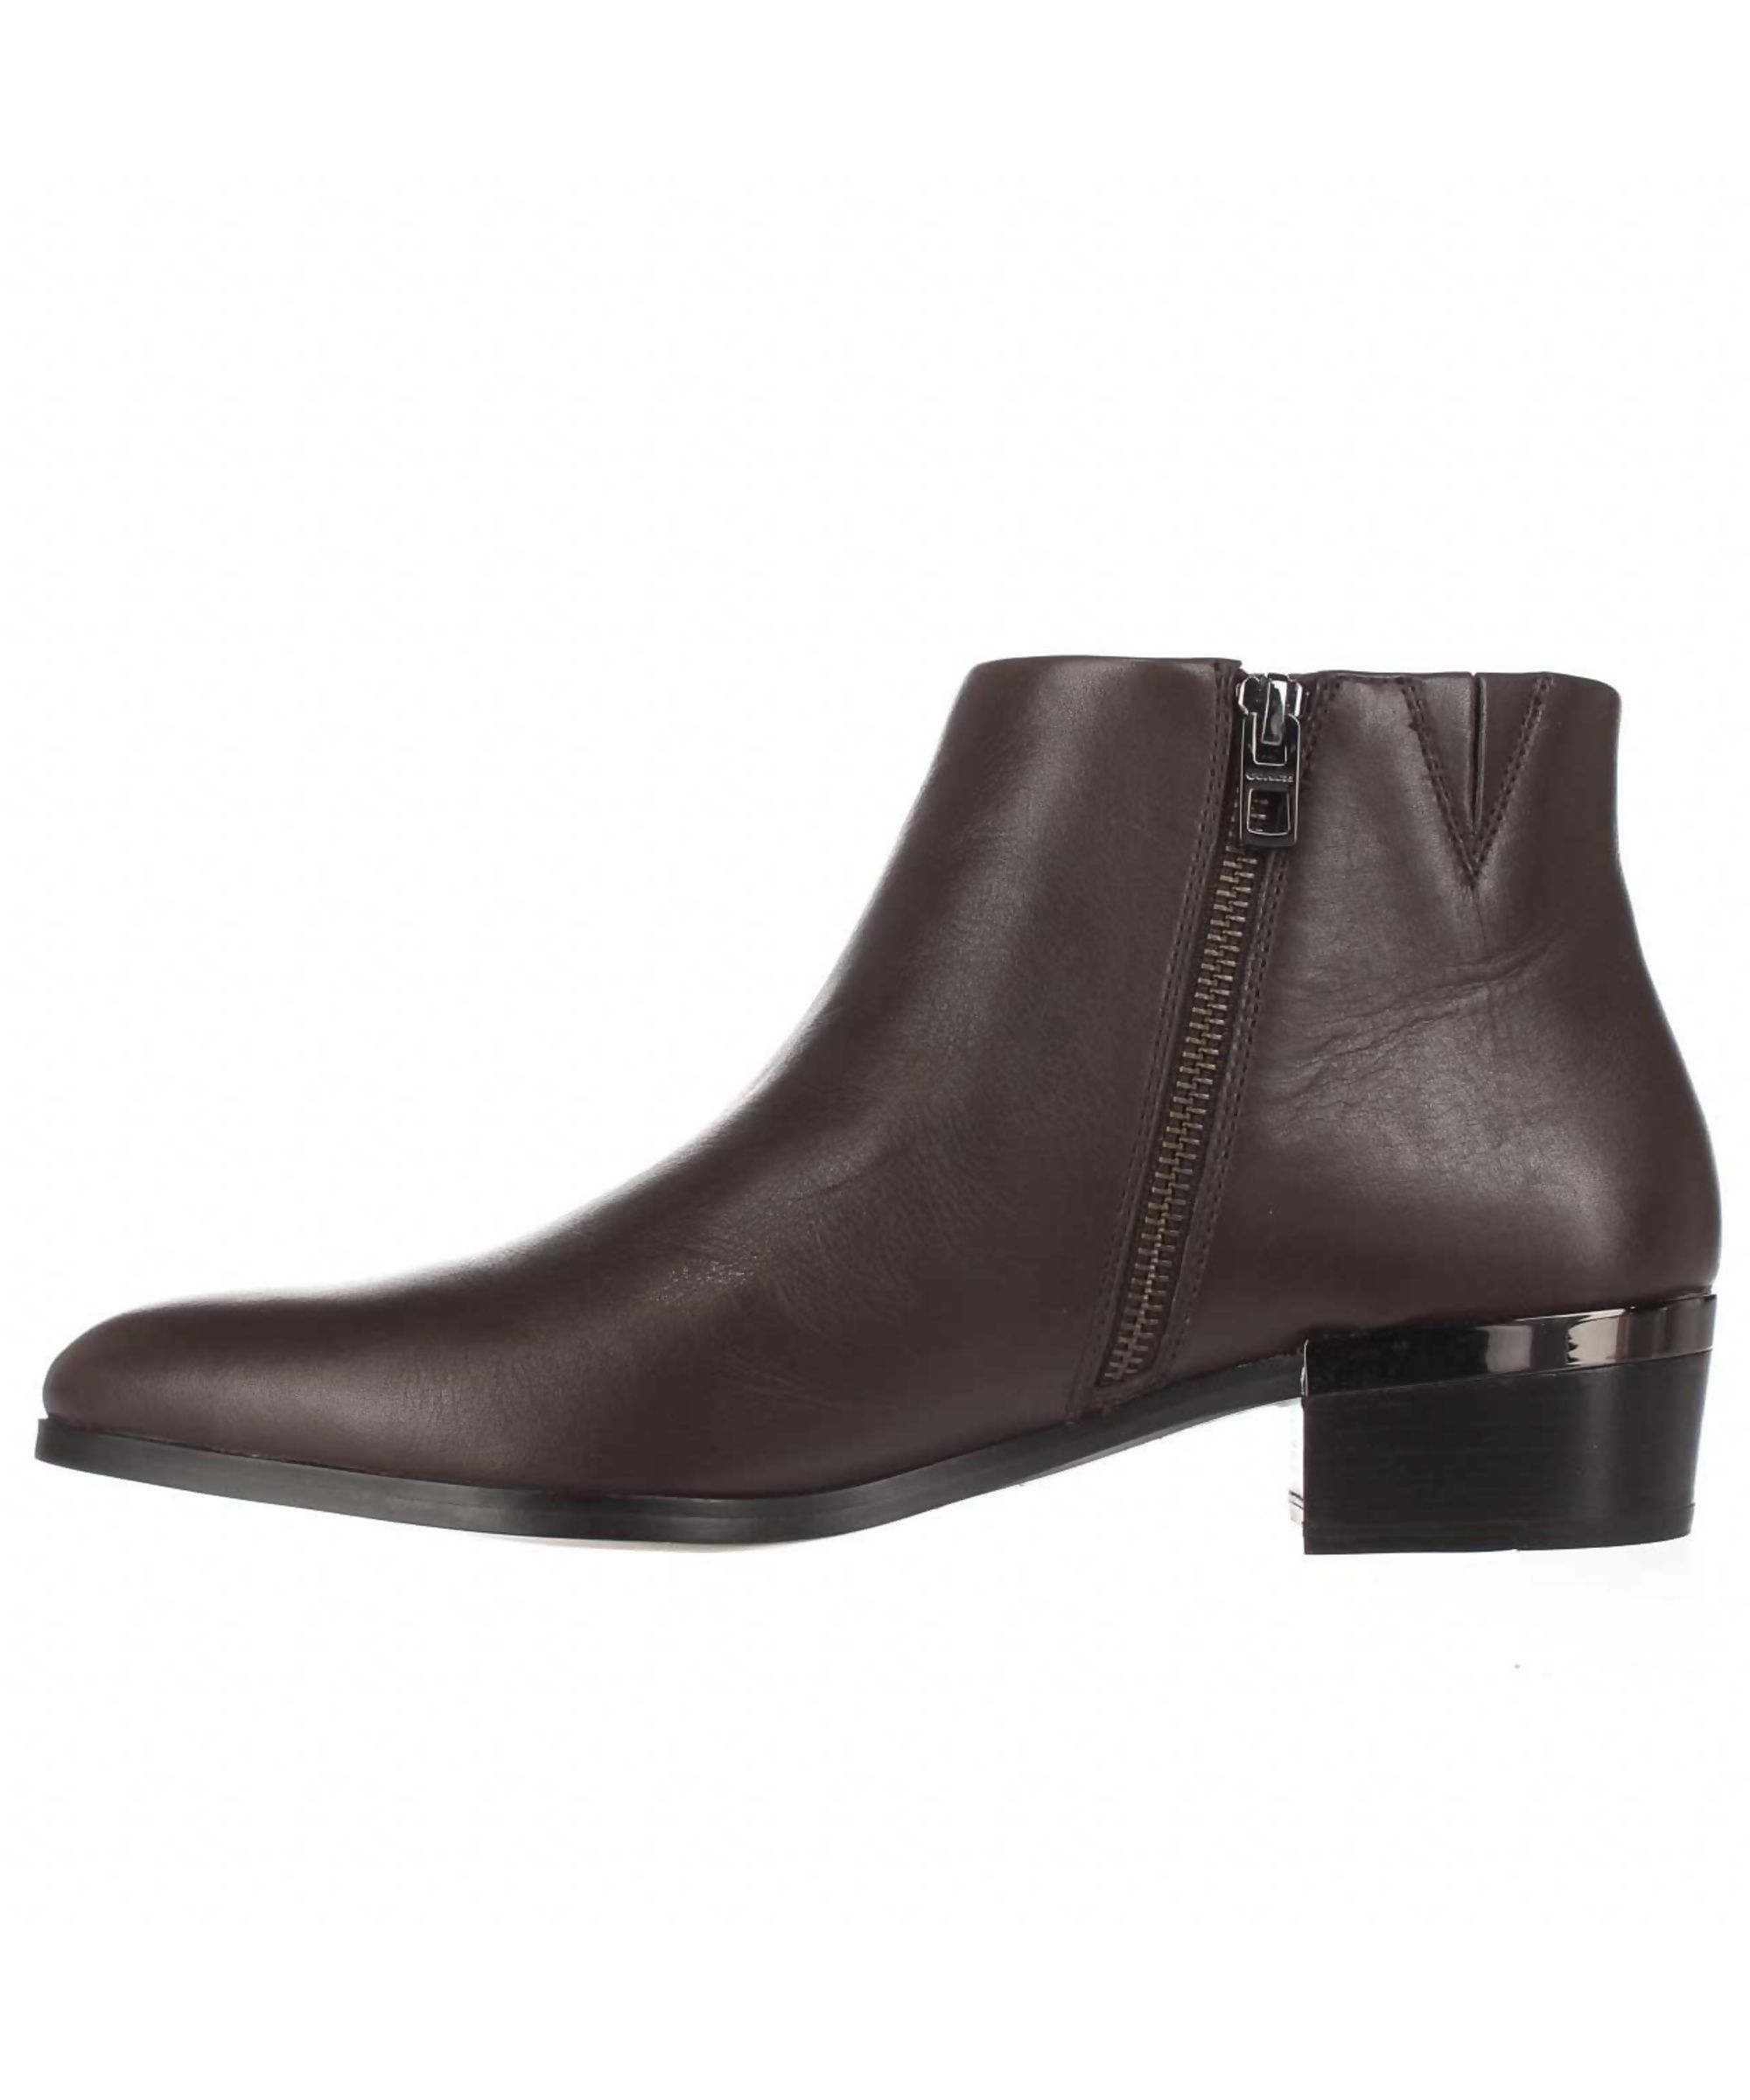 363f454ed645a ... discount coach coach womens montana leather pointed toe ankle fashion  boots shoes boots 0c118 8479a